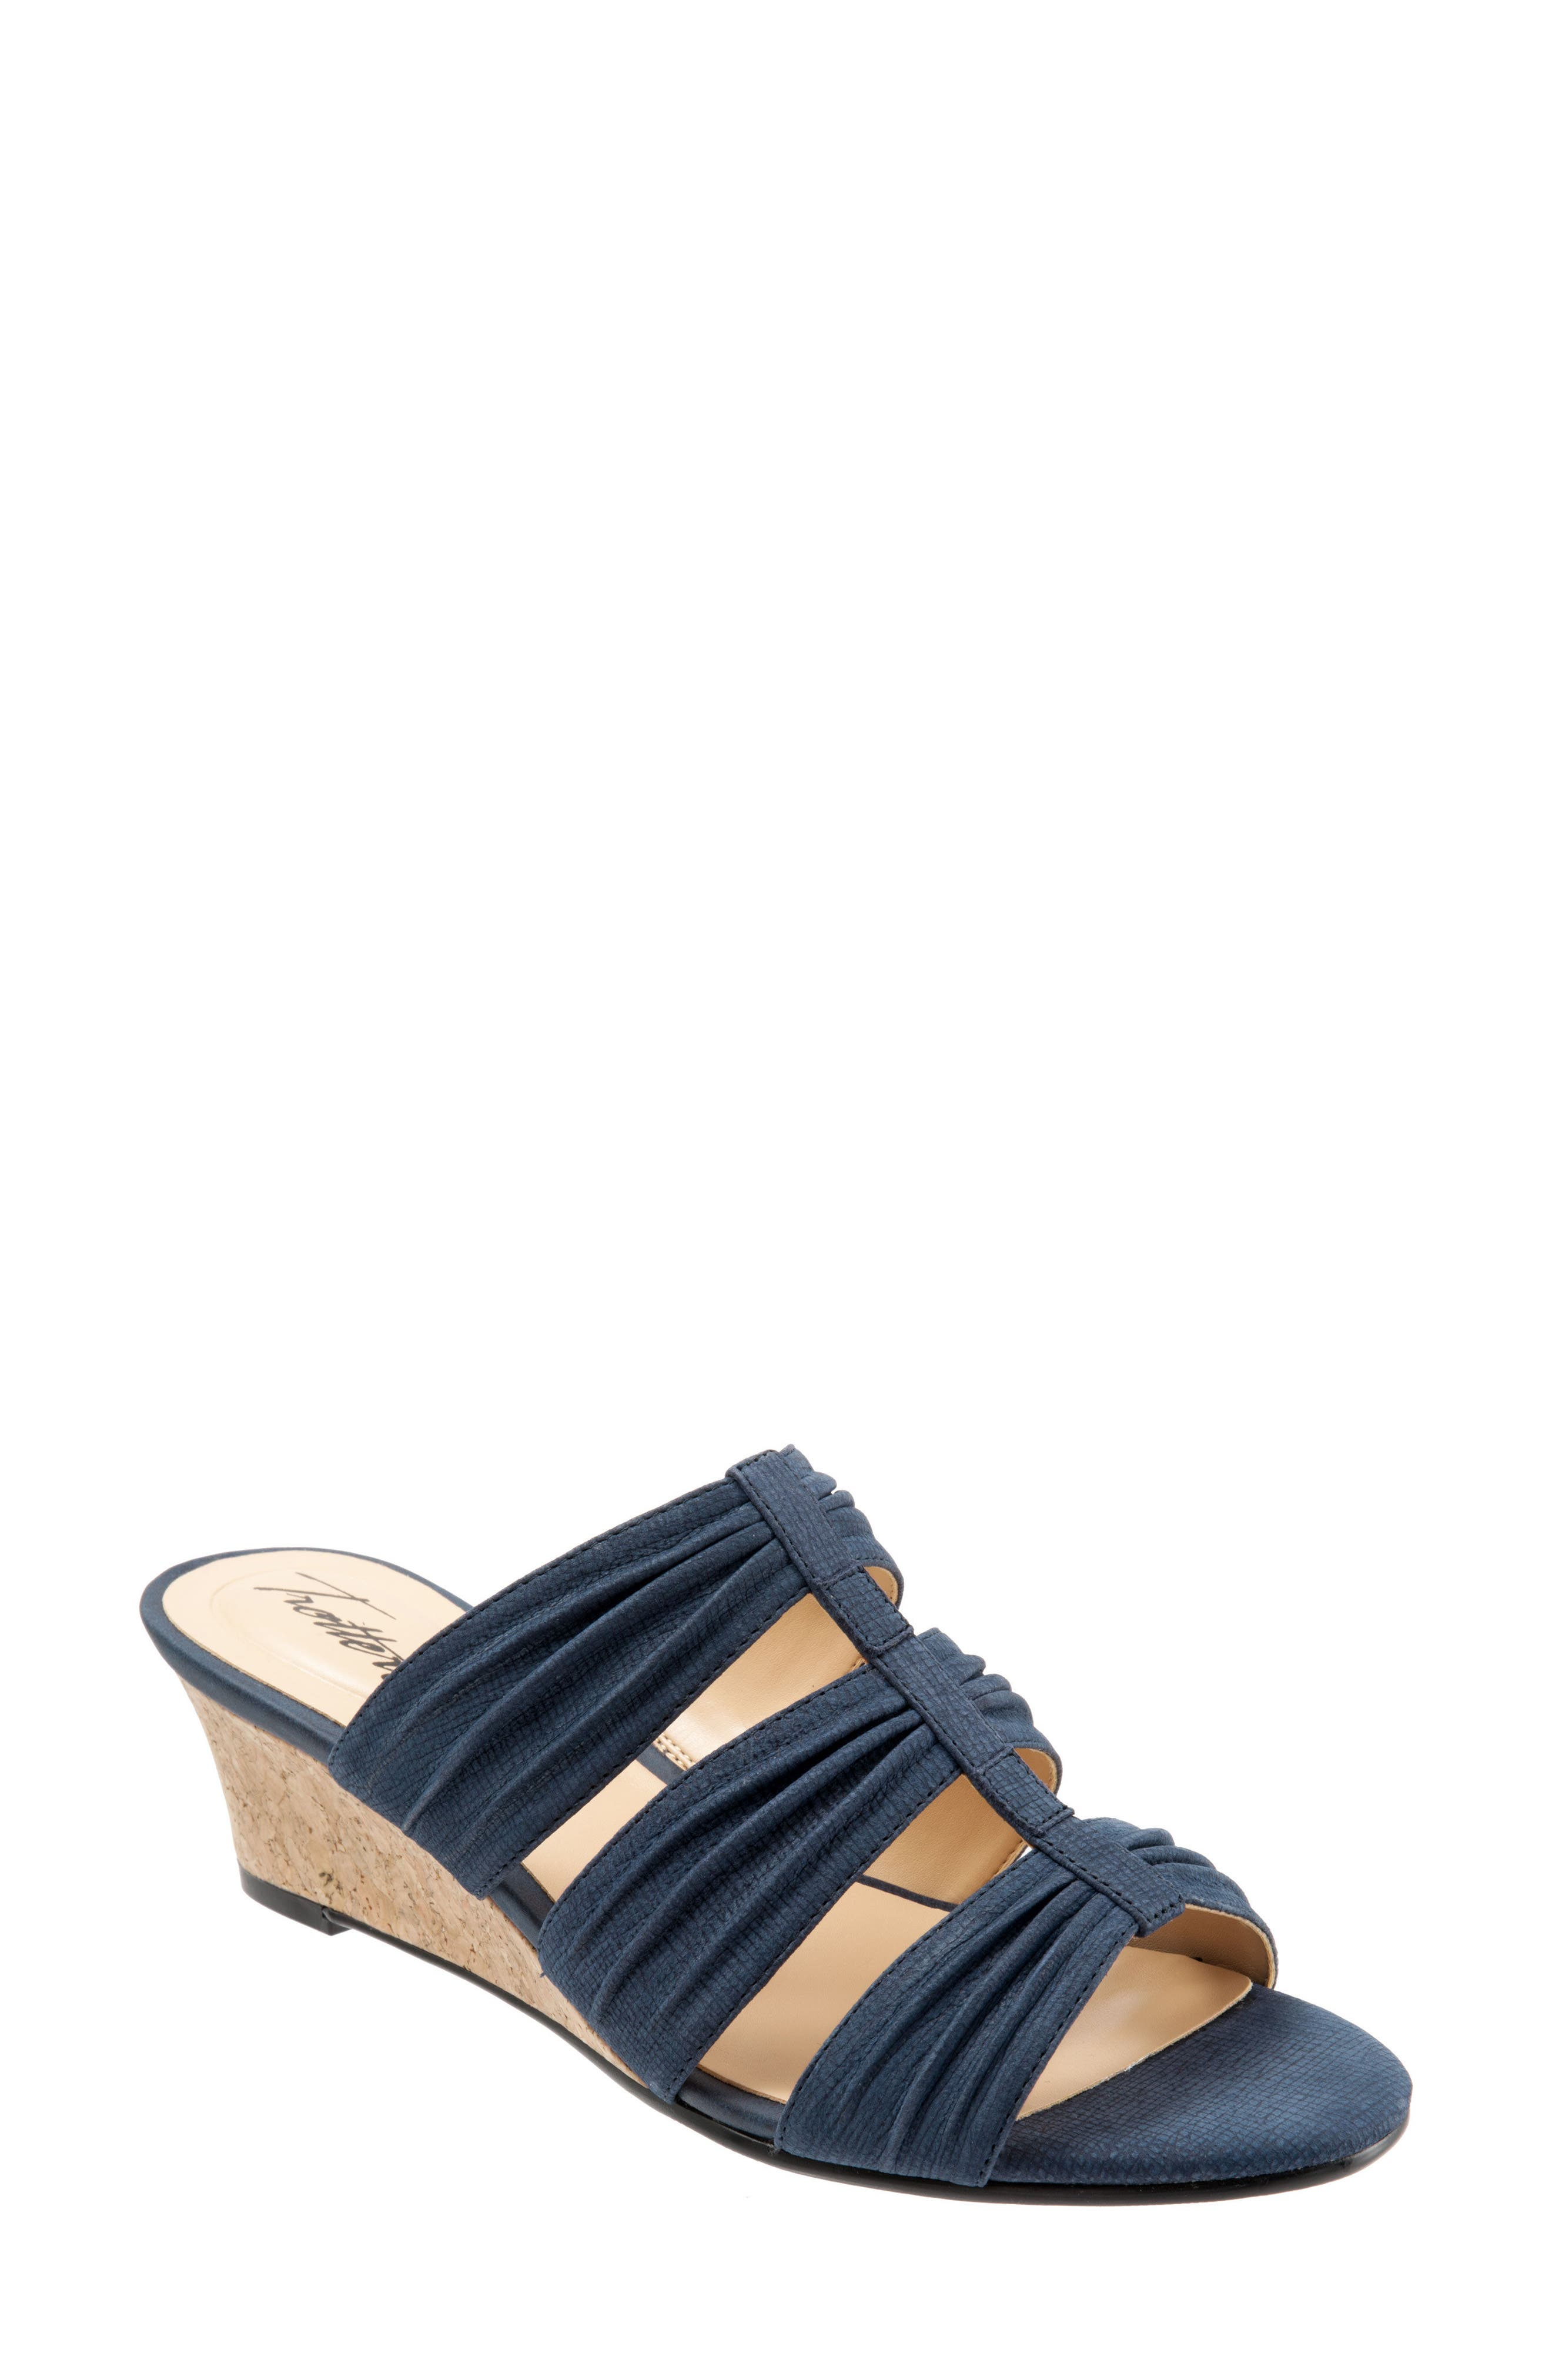 Alternate Image 1 Selected - Trotters Mia Wedge Sandal (Women)